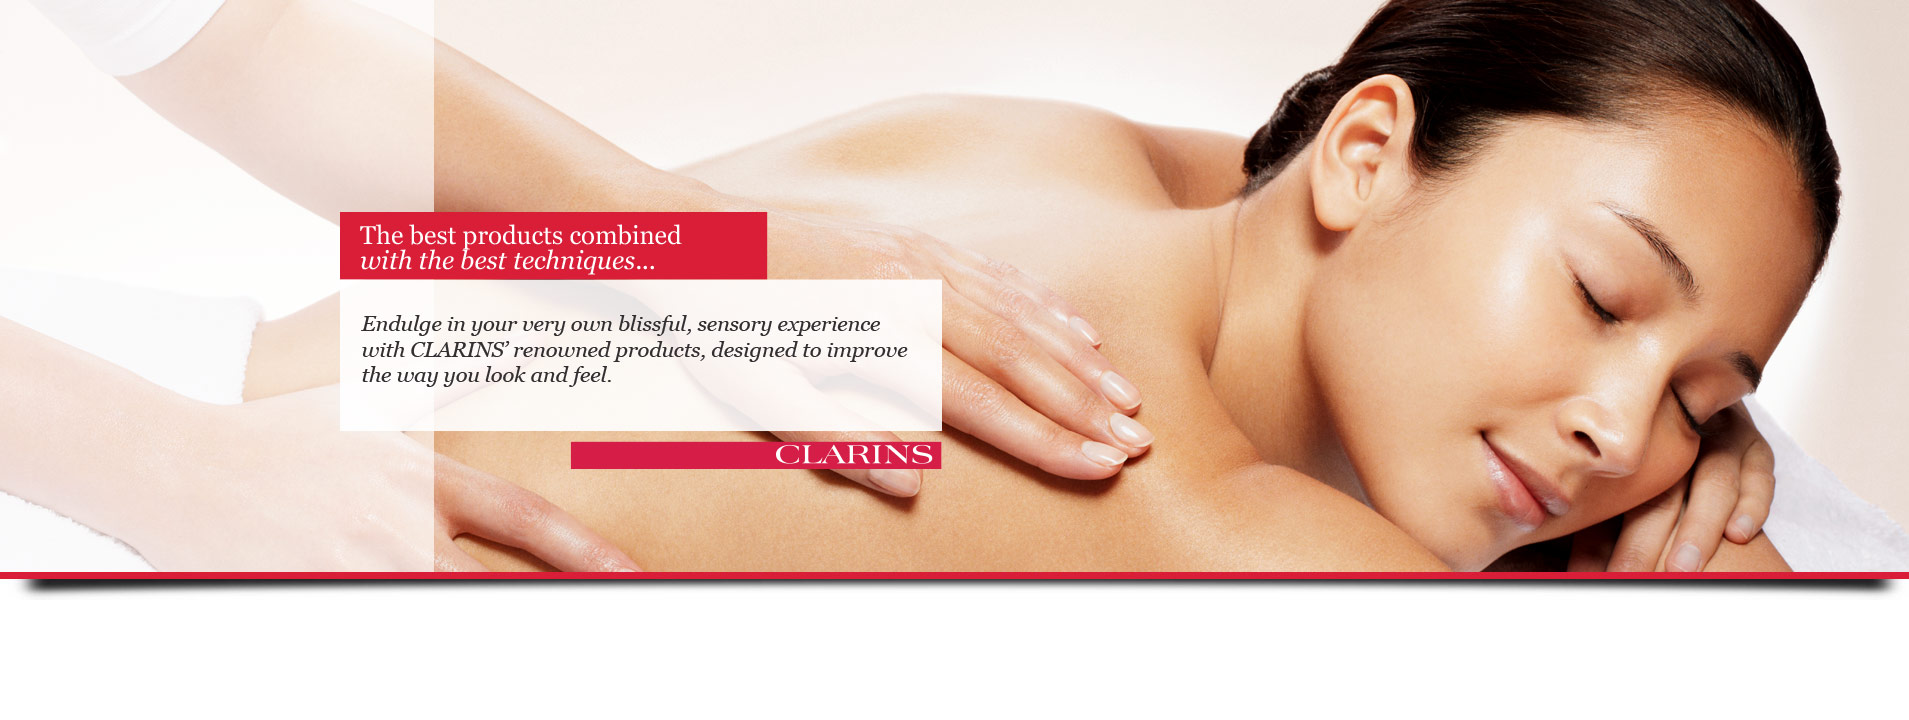 Clarins Salon Newport